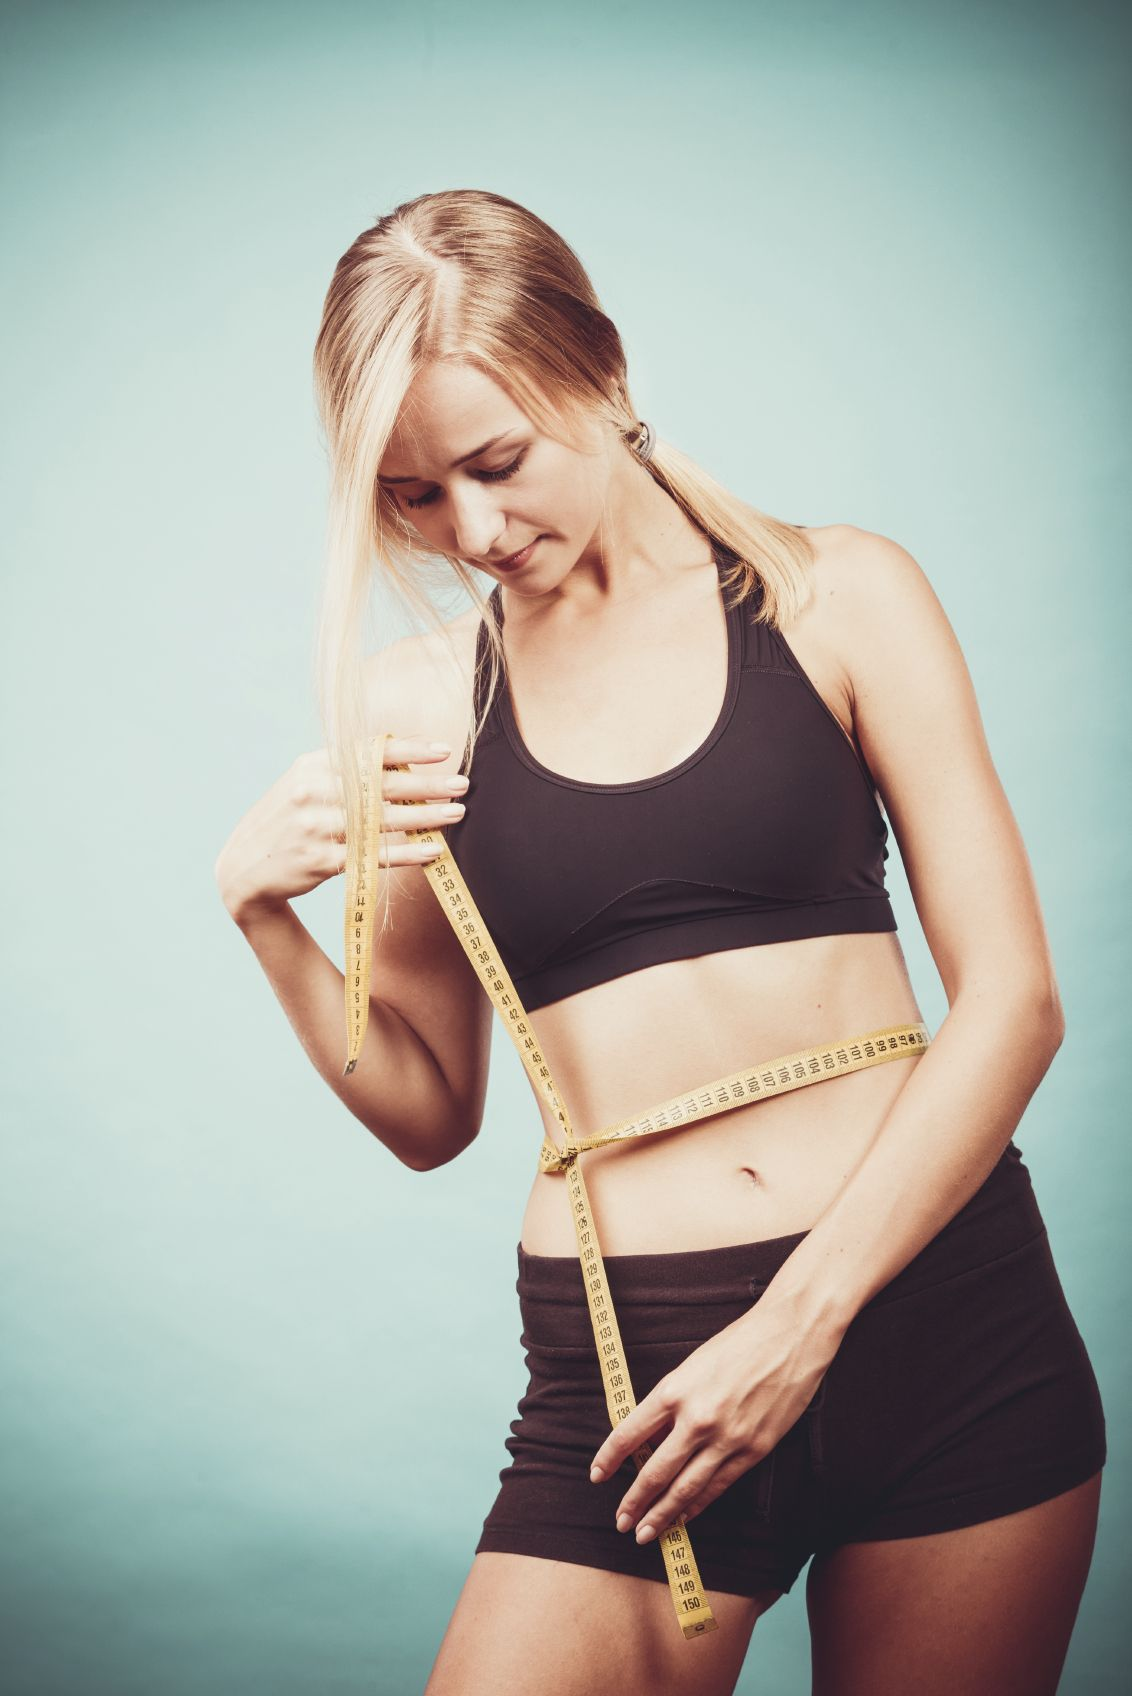 Is Being Skinny Fat Worse Than Being Obese? - http://livelongstayyoung.com/26150-2/